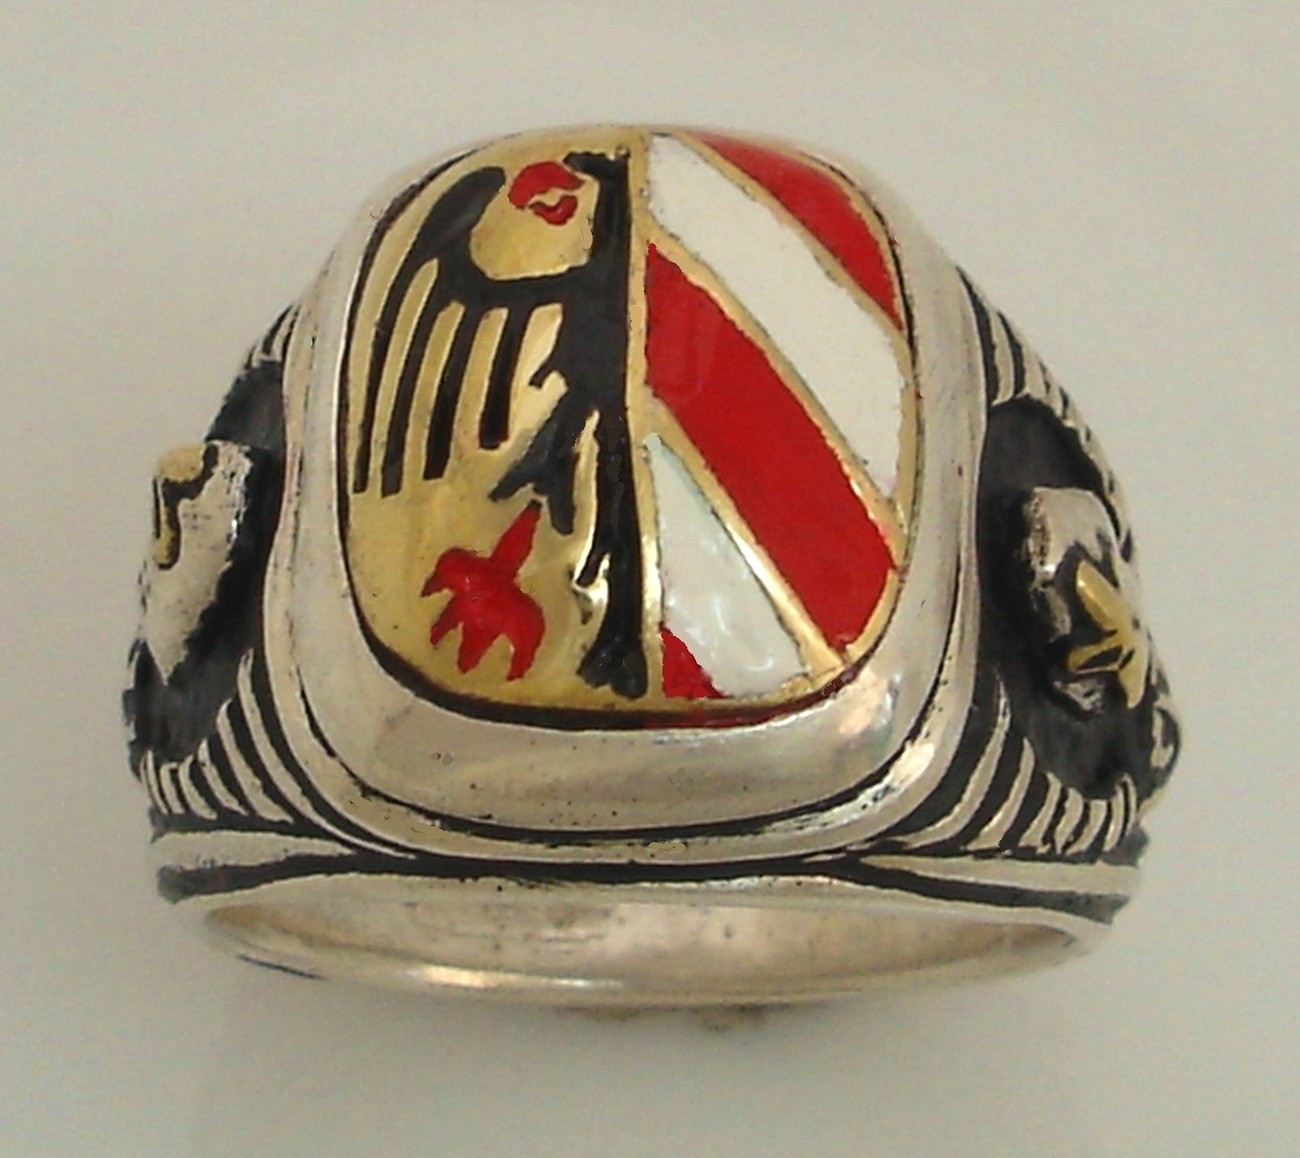 10 Karat Gold Nurnberg Eagle Teutonic Knights ring Sterling Silver Lge